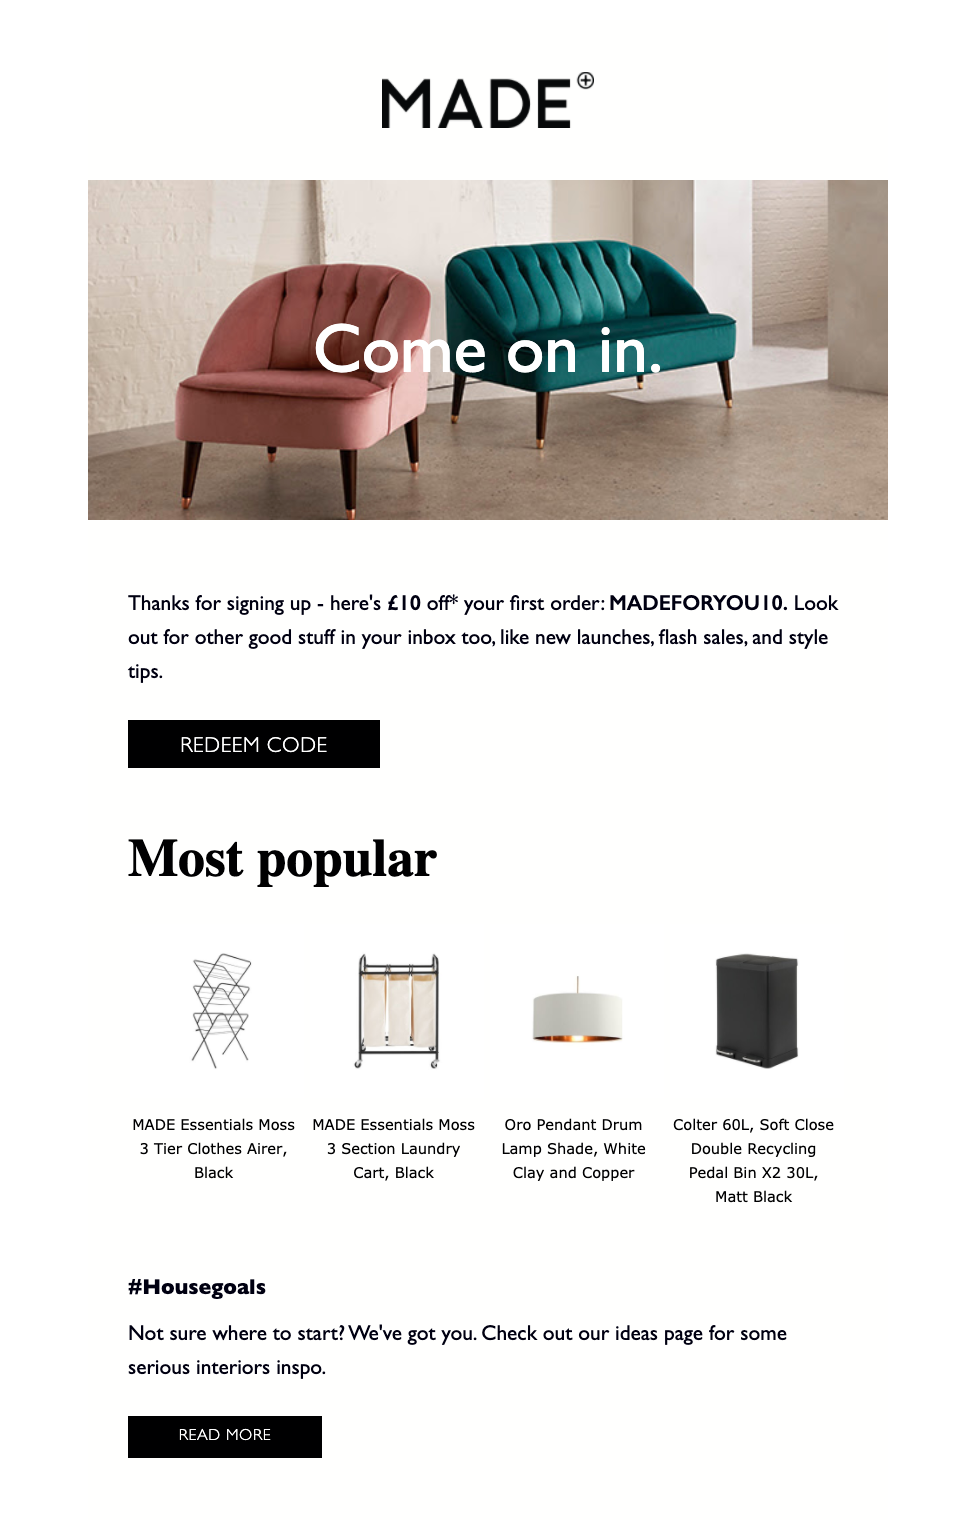 MADE.com Welcome Email With Discount Code